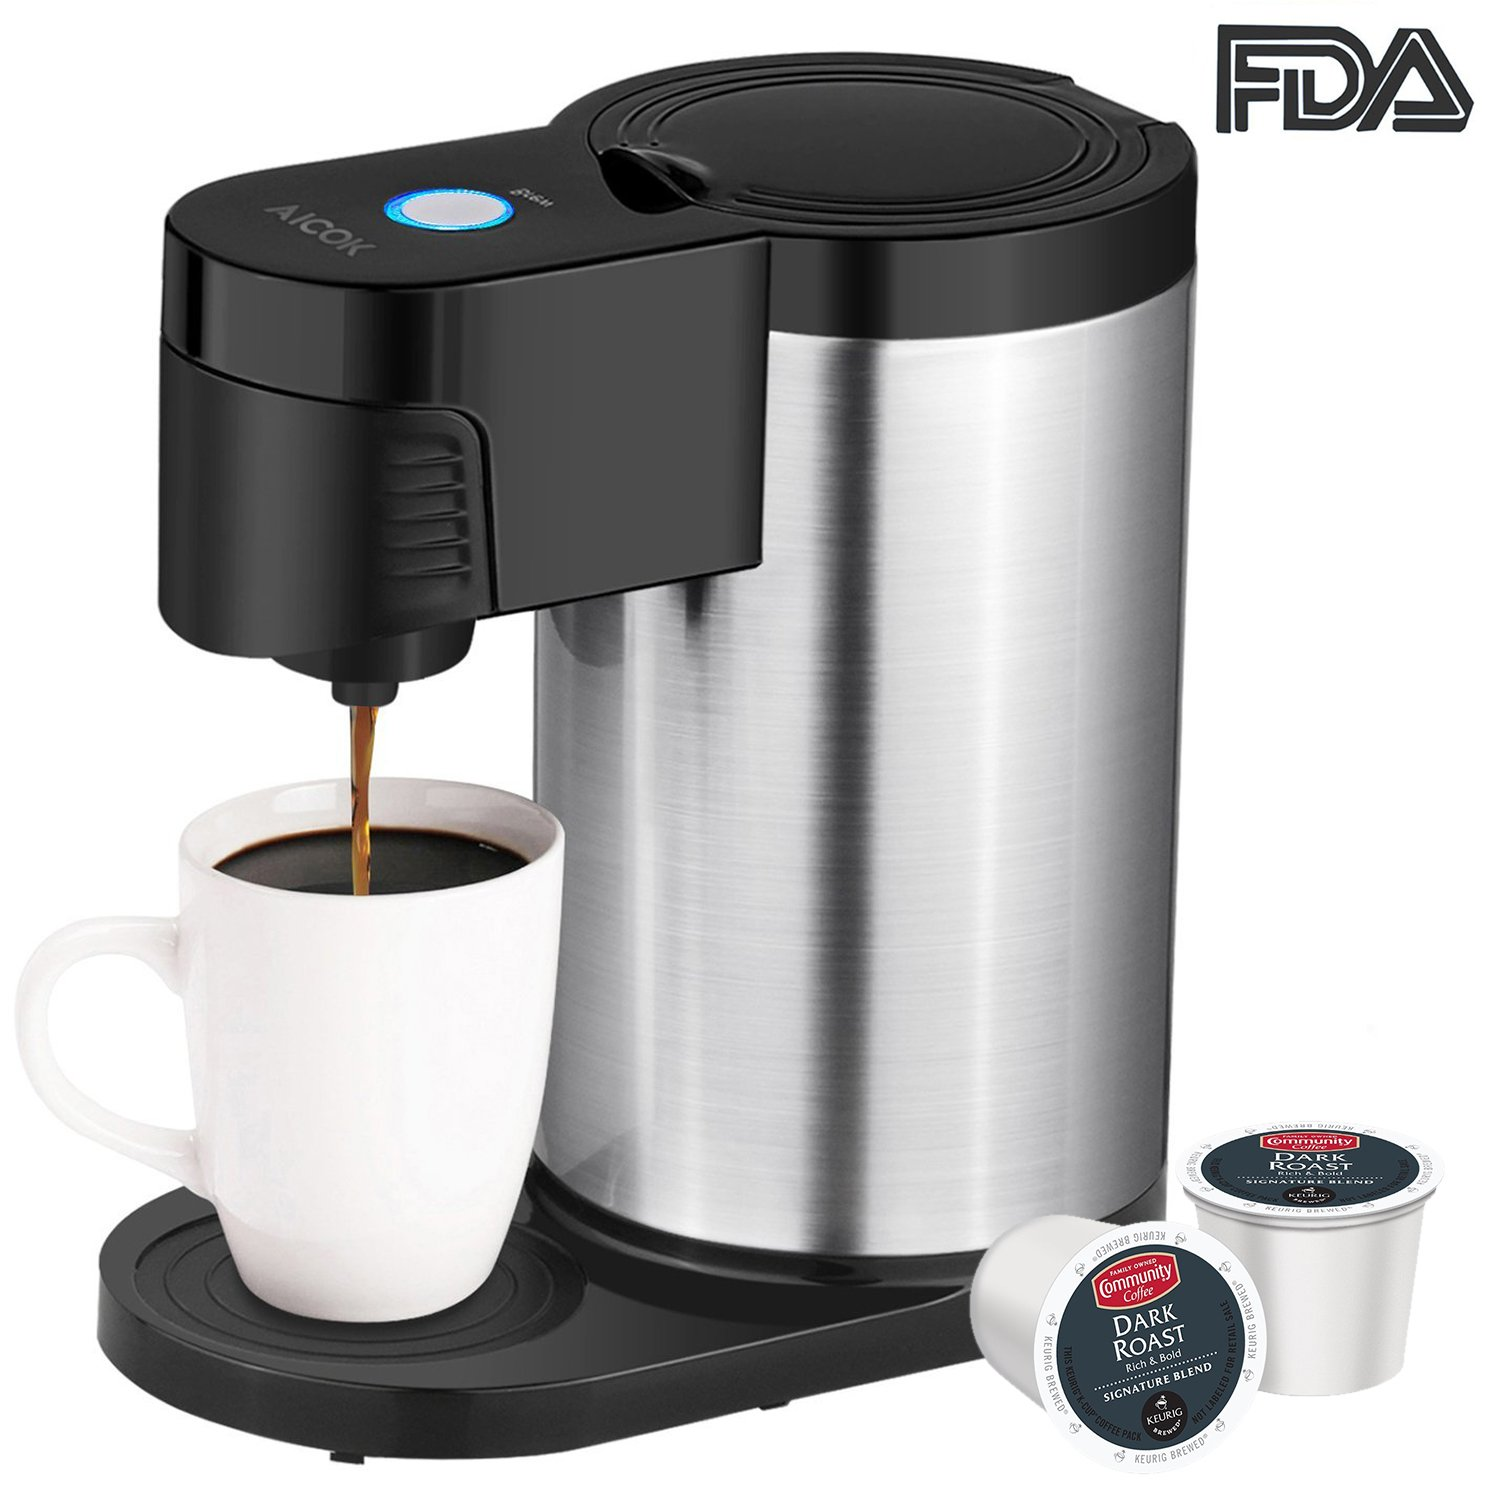 Aicok Single Serve Coffee Maker, Single Cup Coffee Maker for Most Single Cup Pods including K Cup Pods, One Cup Coffee Maker with Stainless Steel Body by Aicok (Image #1)